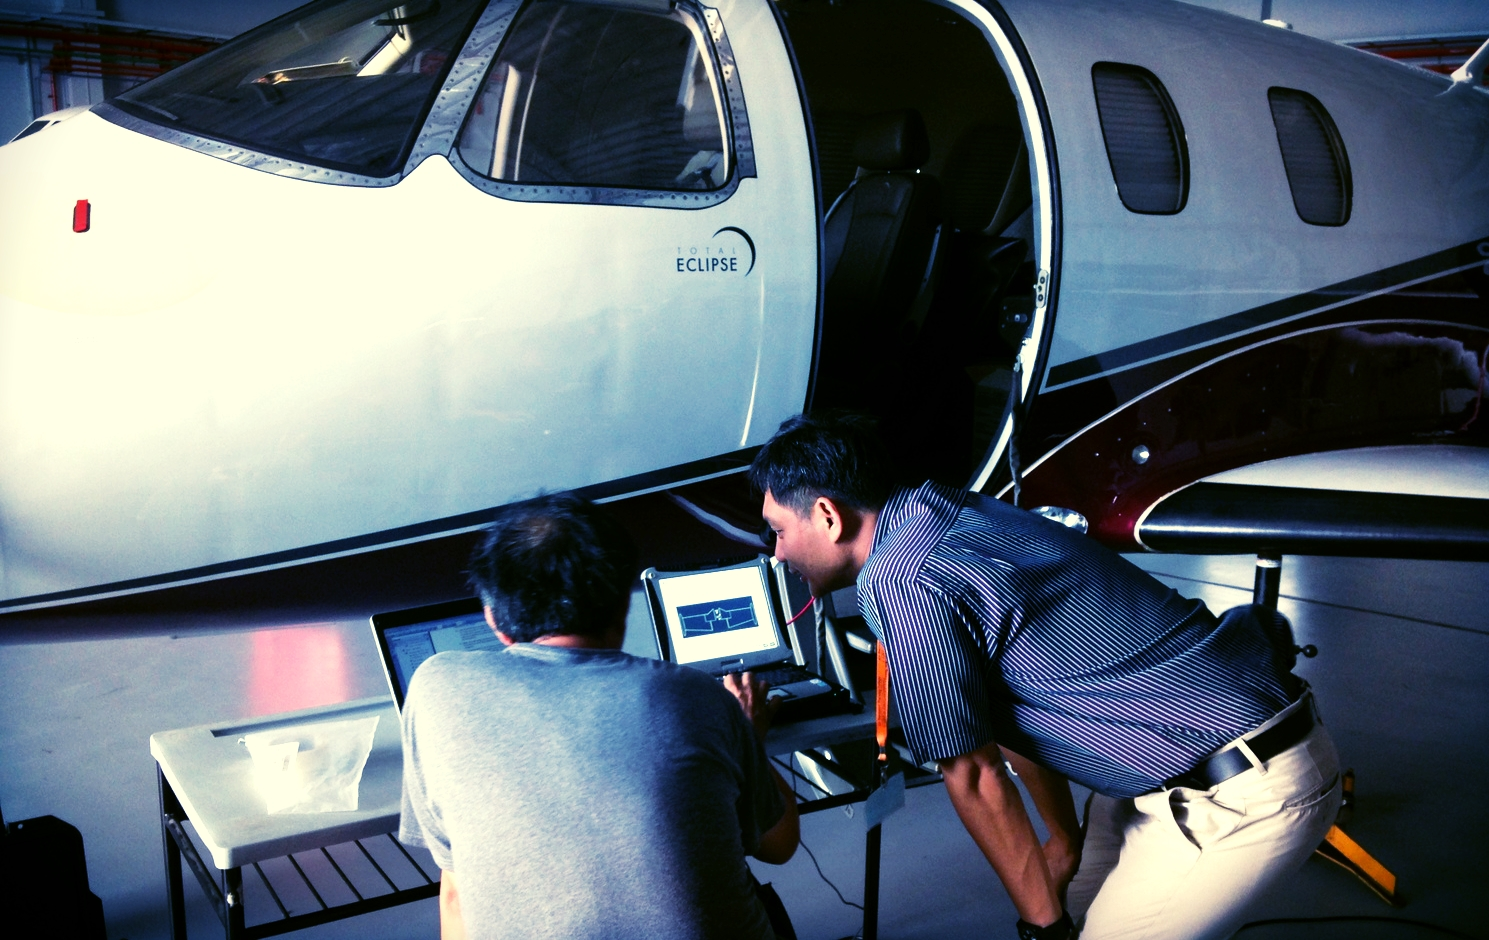 With aircraft on jacks, WOA engineer troubleshoots the world's most technological advanced light jet for rectifications and defect parts replacement for our aircraft owner.